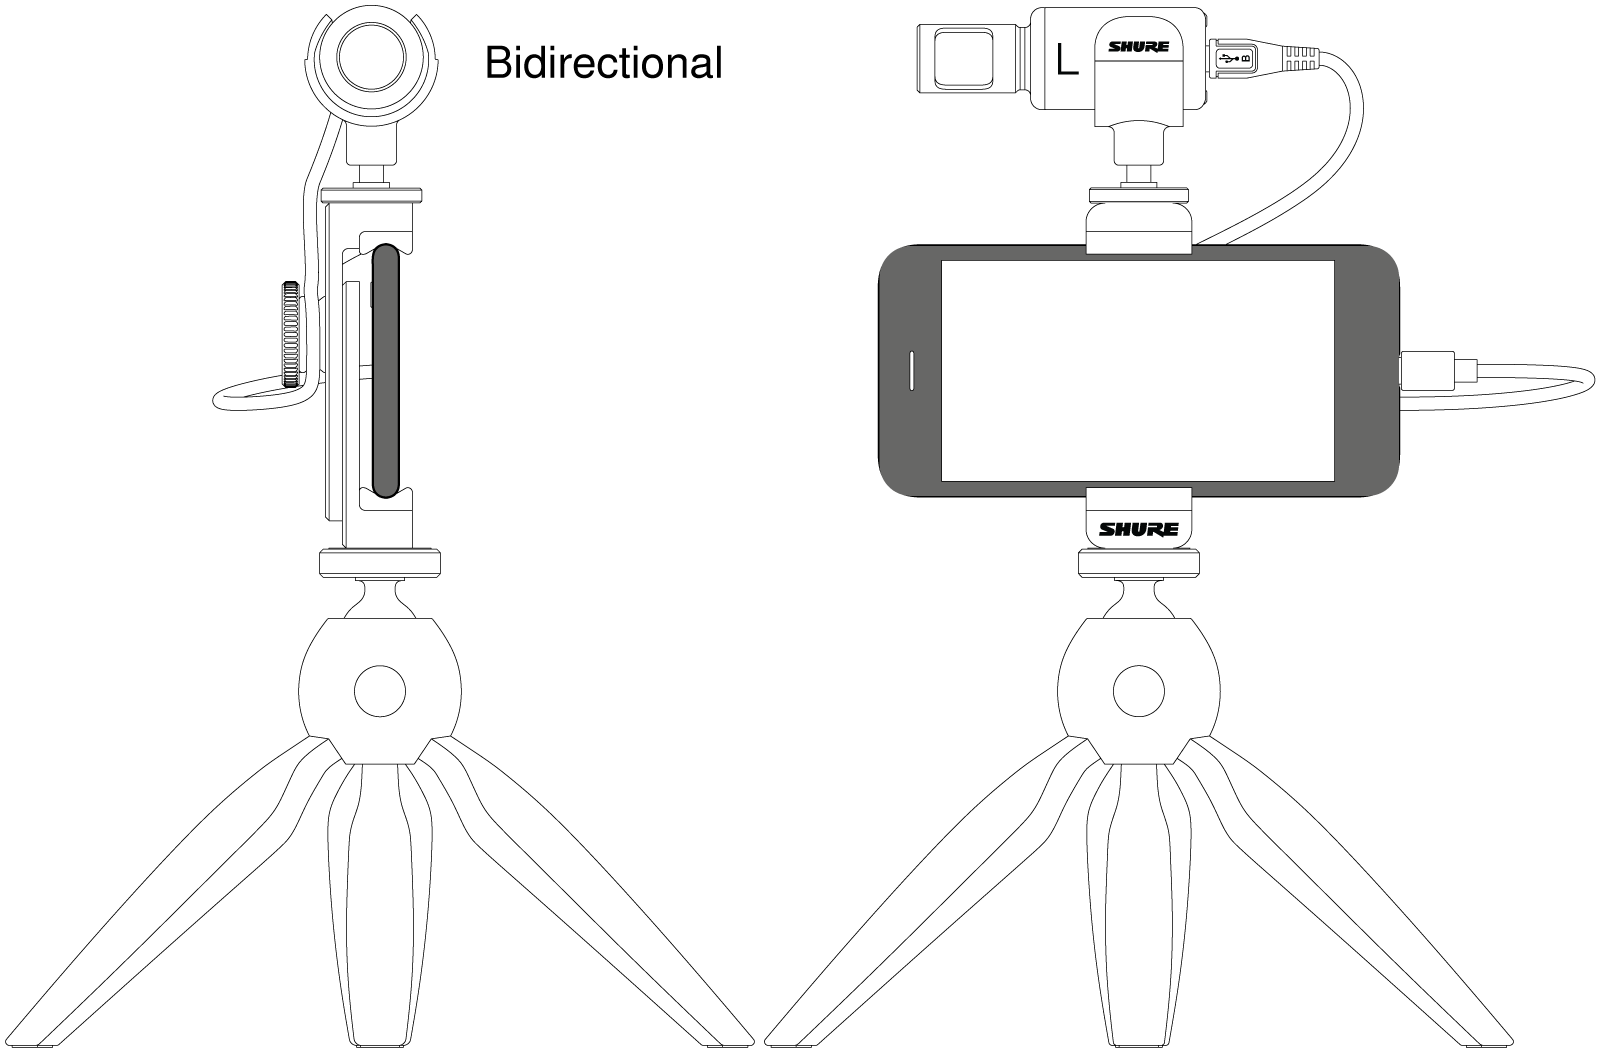 Illustrations of MOTIV mic and phone in bidirectional interview mode